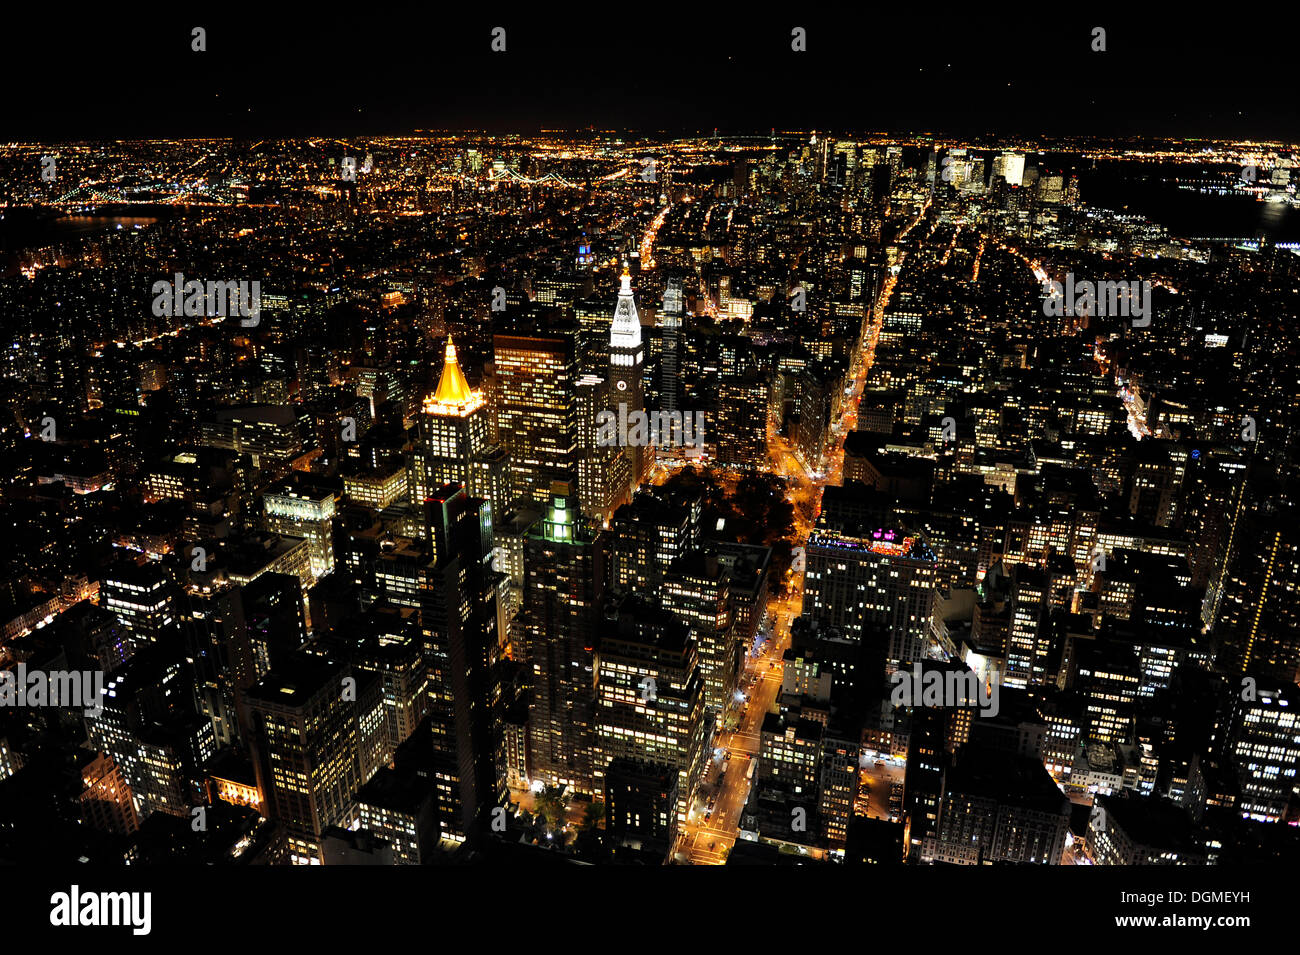 Manhattan as seen from the Empire State Building at night, southbound view, New York City, New York, USA, North America - Stock Image